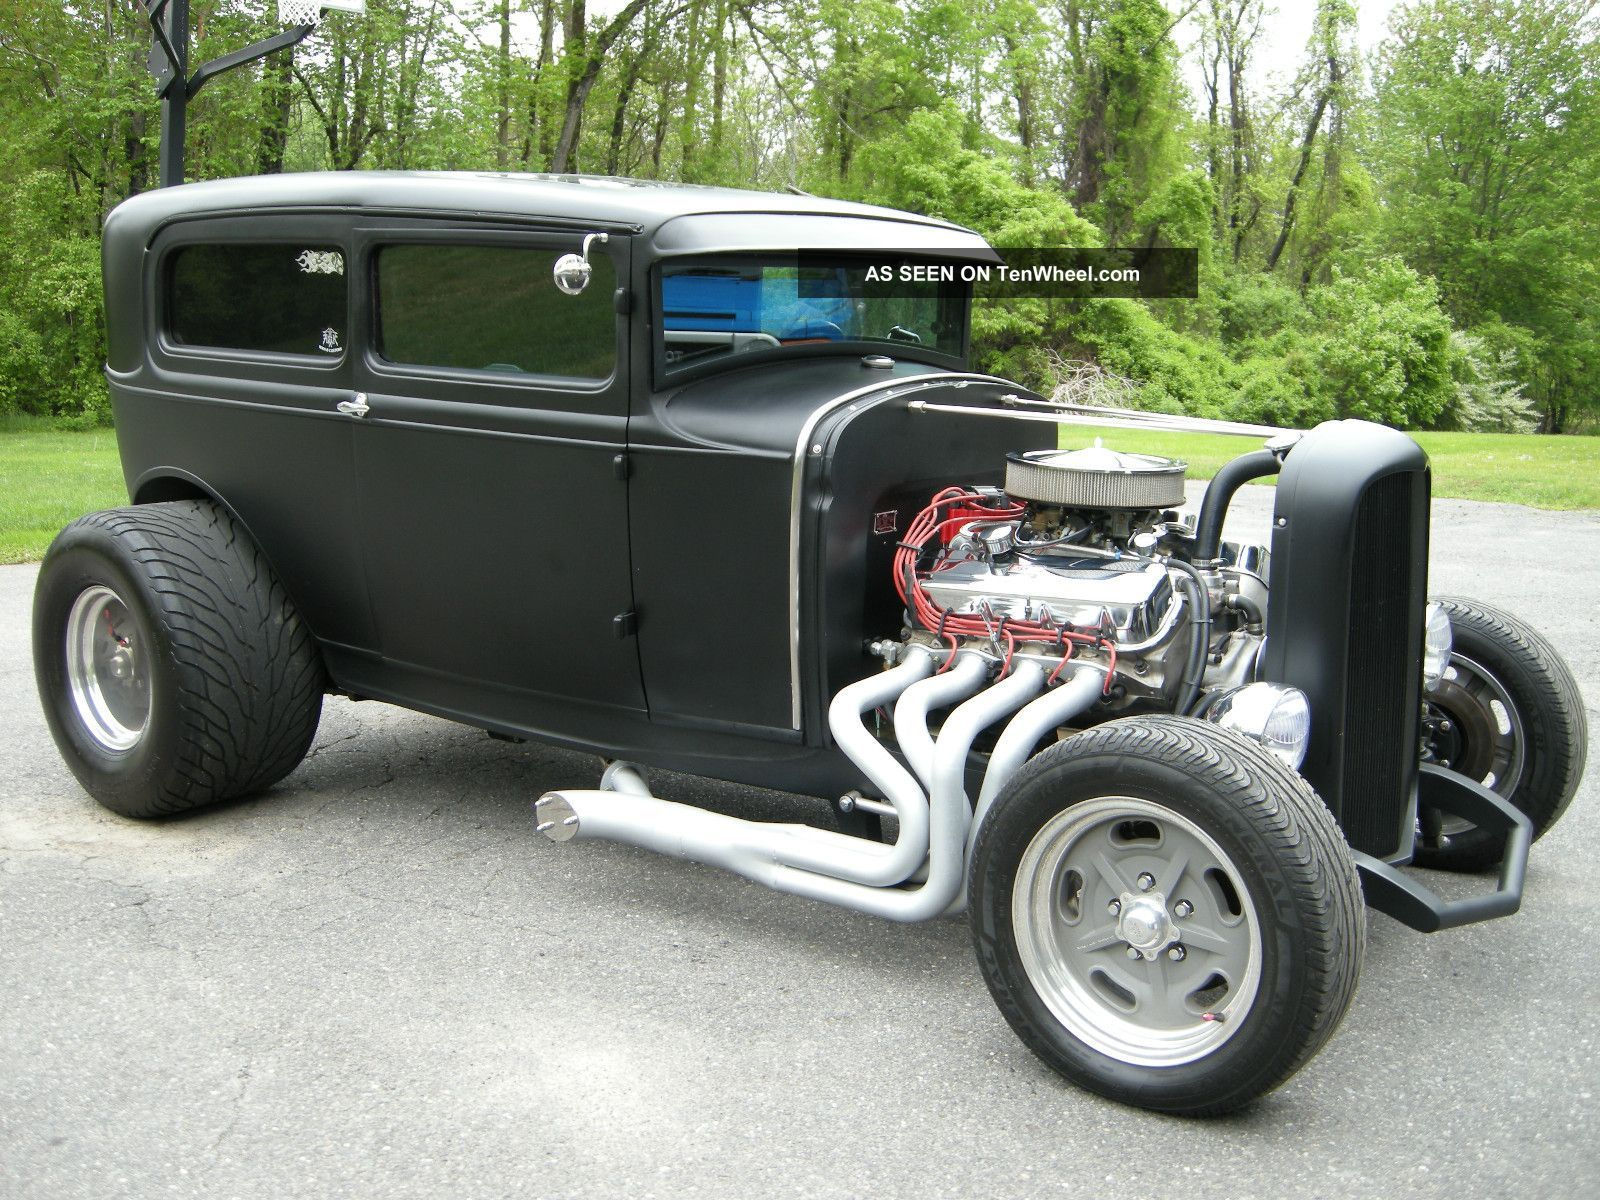 1955 chevrolet hot rod truck pictures to pin on pinterest - Images Of Ford Hot Rod Trucks 1930 Ford Model A Hot Rod